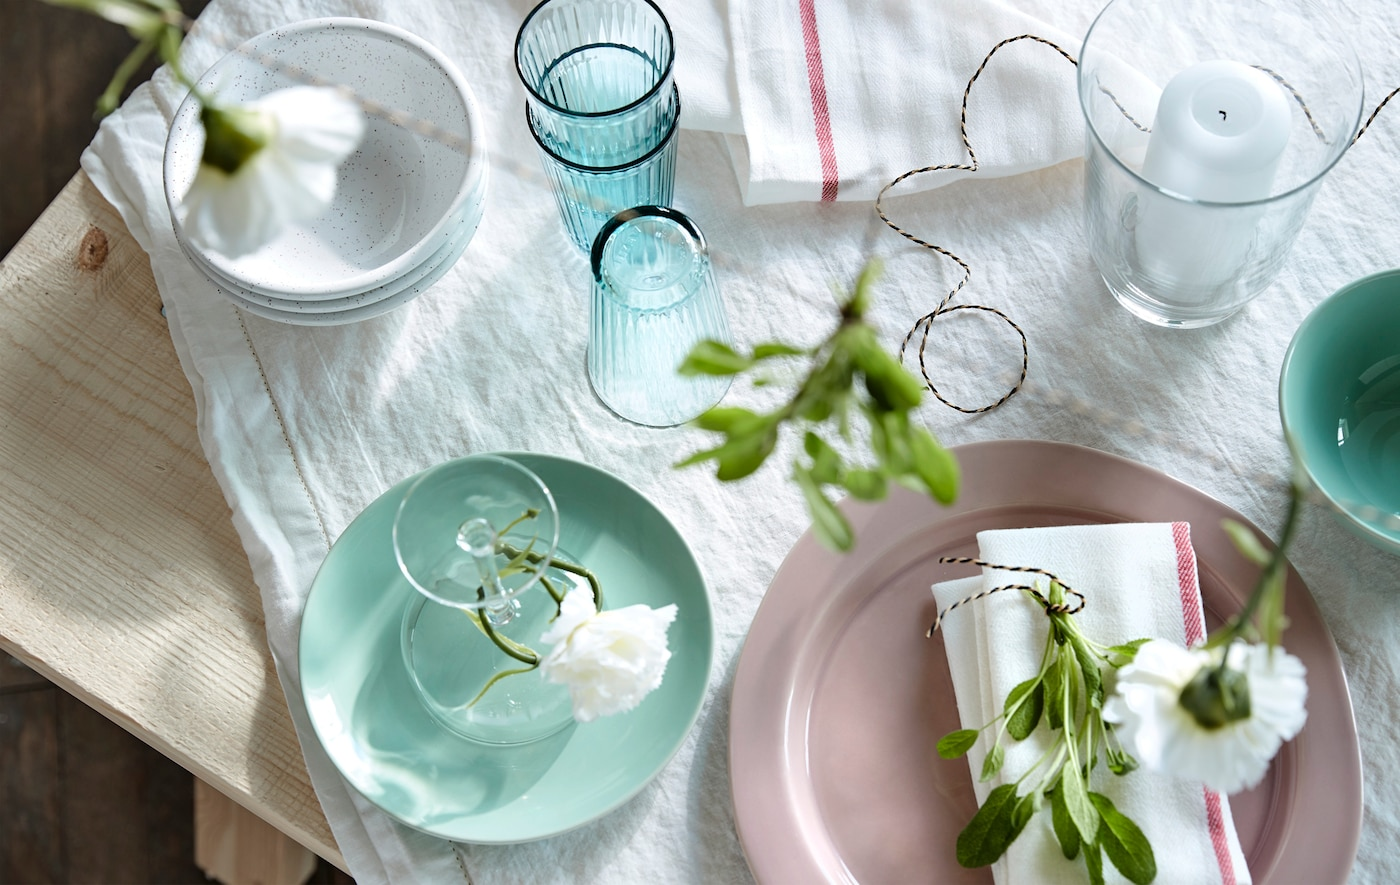 Come Apparecchiare Una Bella Tavola create a sage green summer table – ikea - ikea it